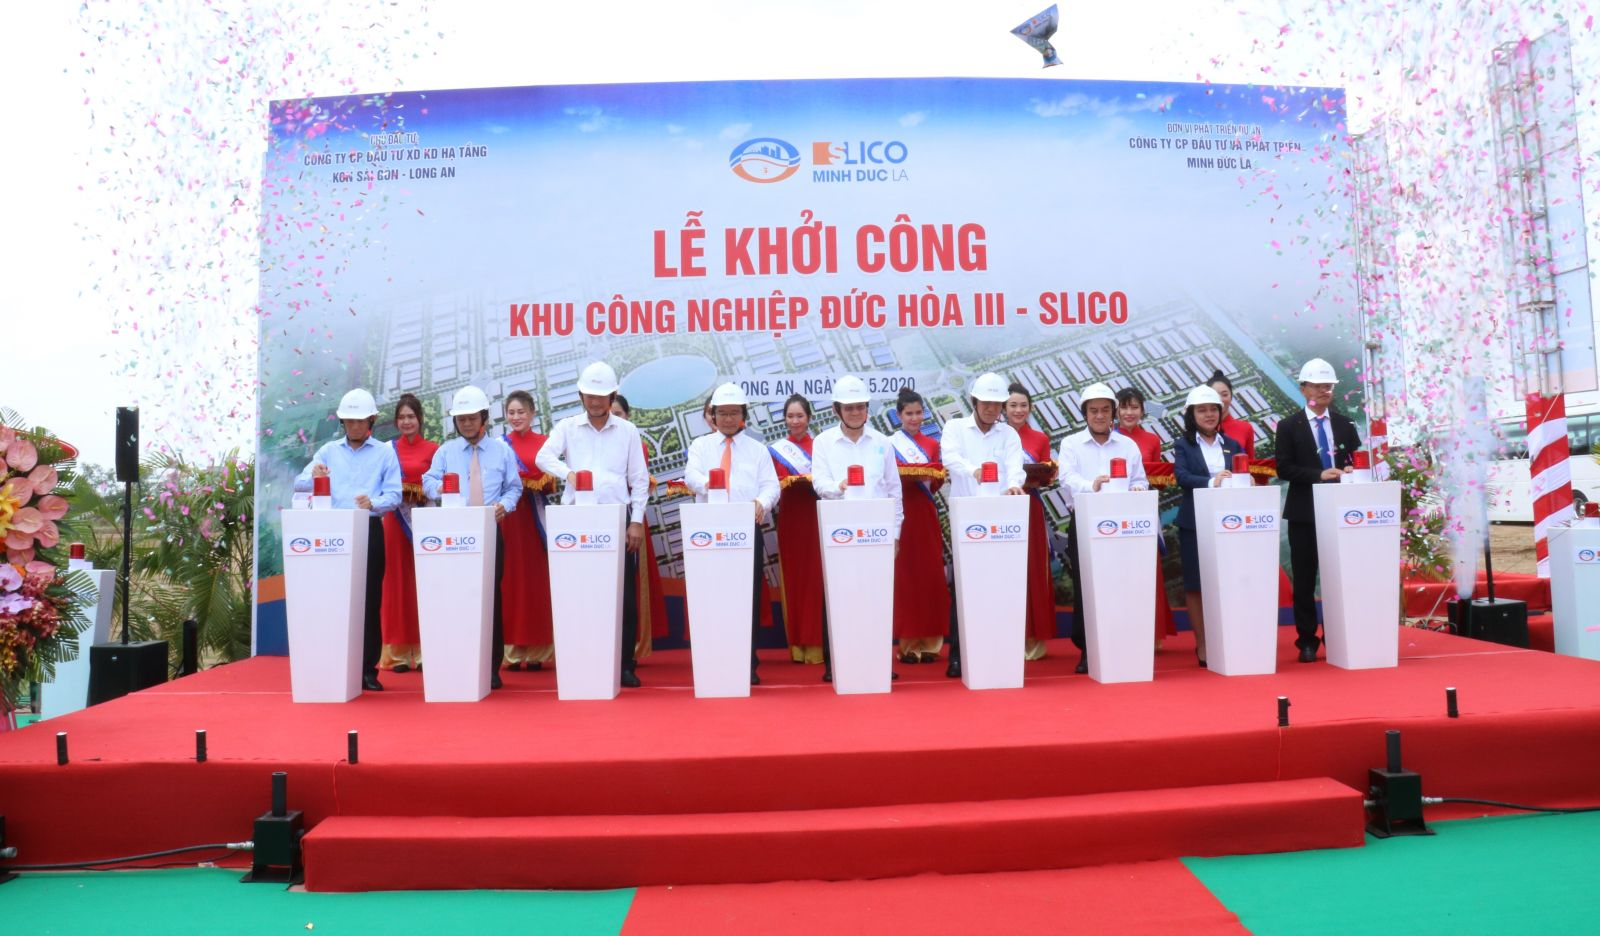 Former State President - Truong Tan Sang expects investors to concentrate resources to soon complete and put the IP into operation